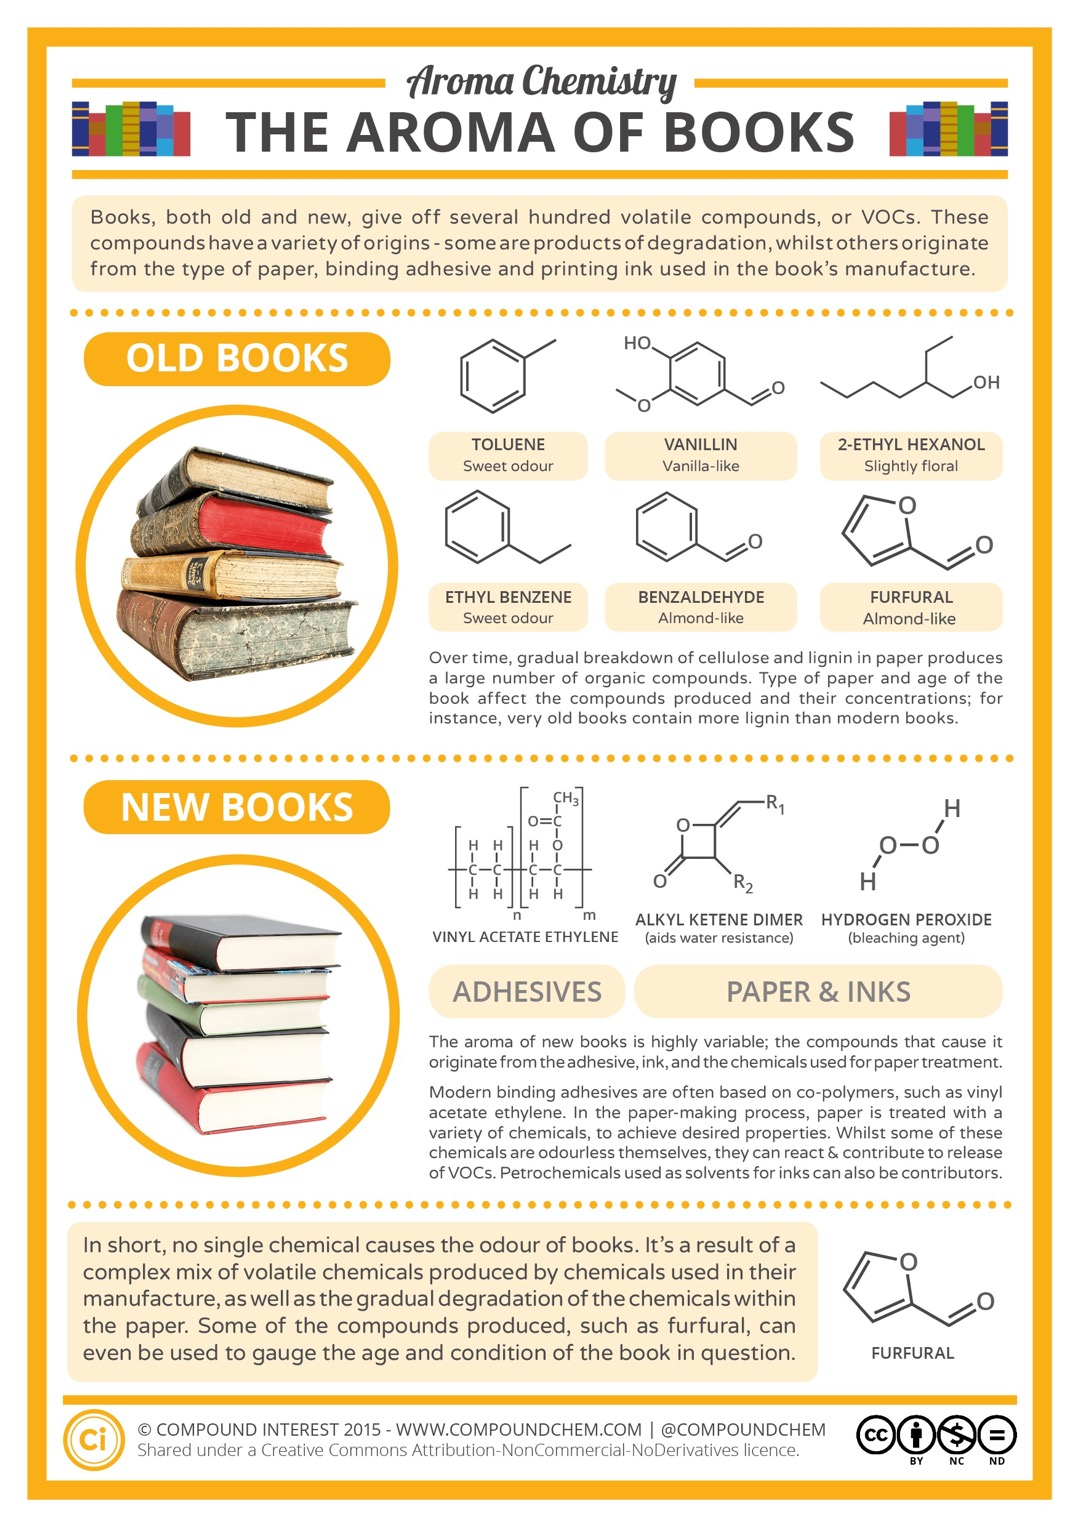 The aroma of old and new books explained #infographic